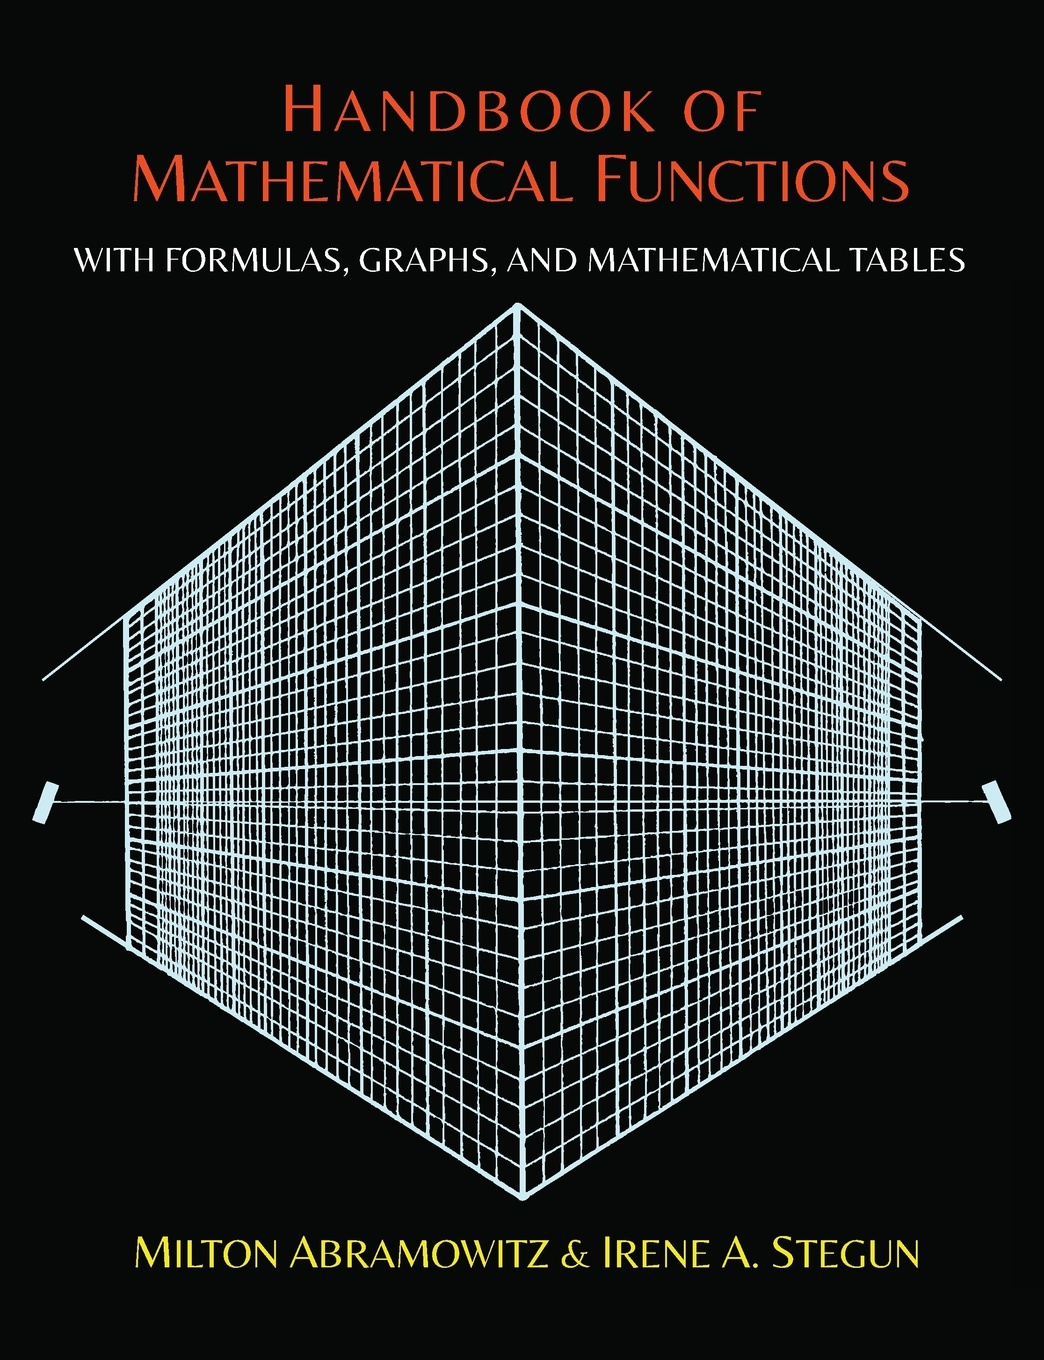 Milton Abramowitz, Irene Stegun Handbook of Mathematical Functions with Formulas, Graphs, and Mathematical Tables the terrific times tables book